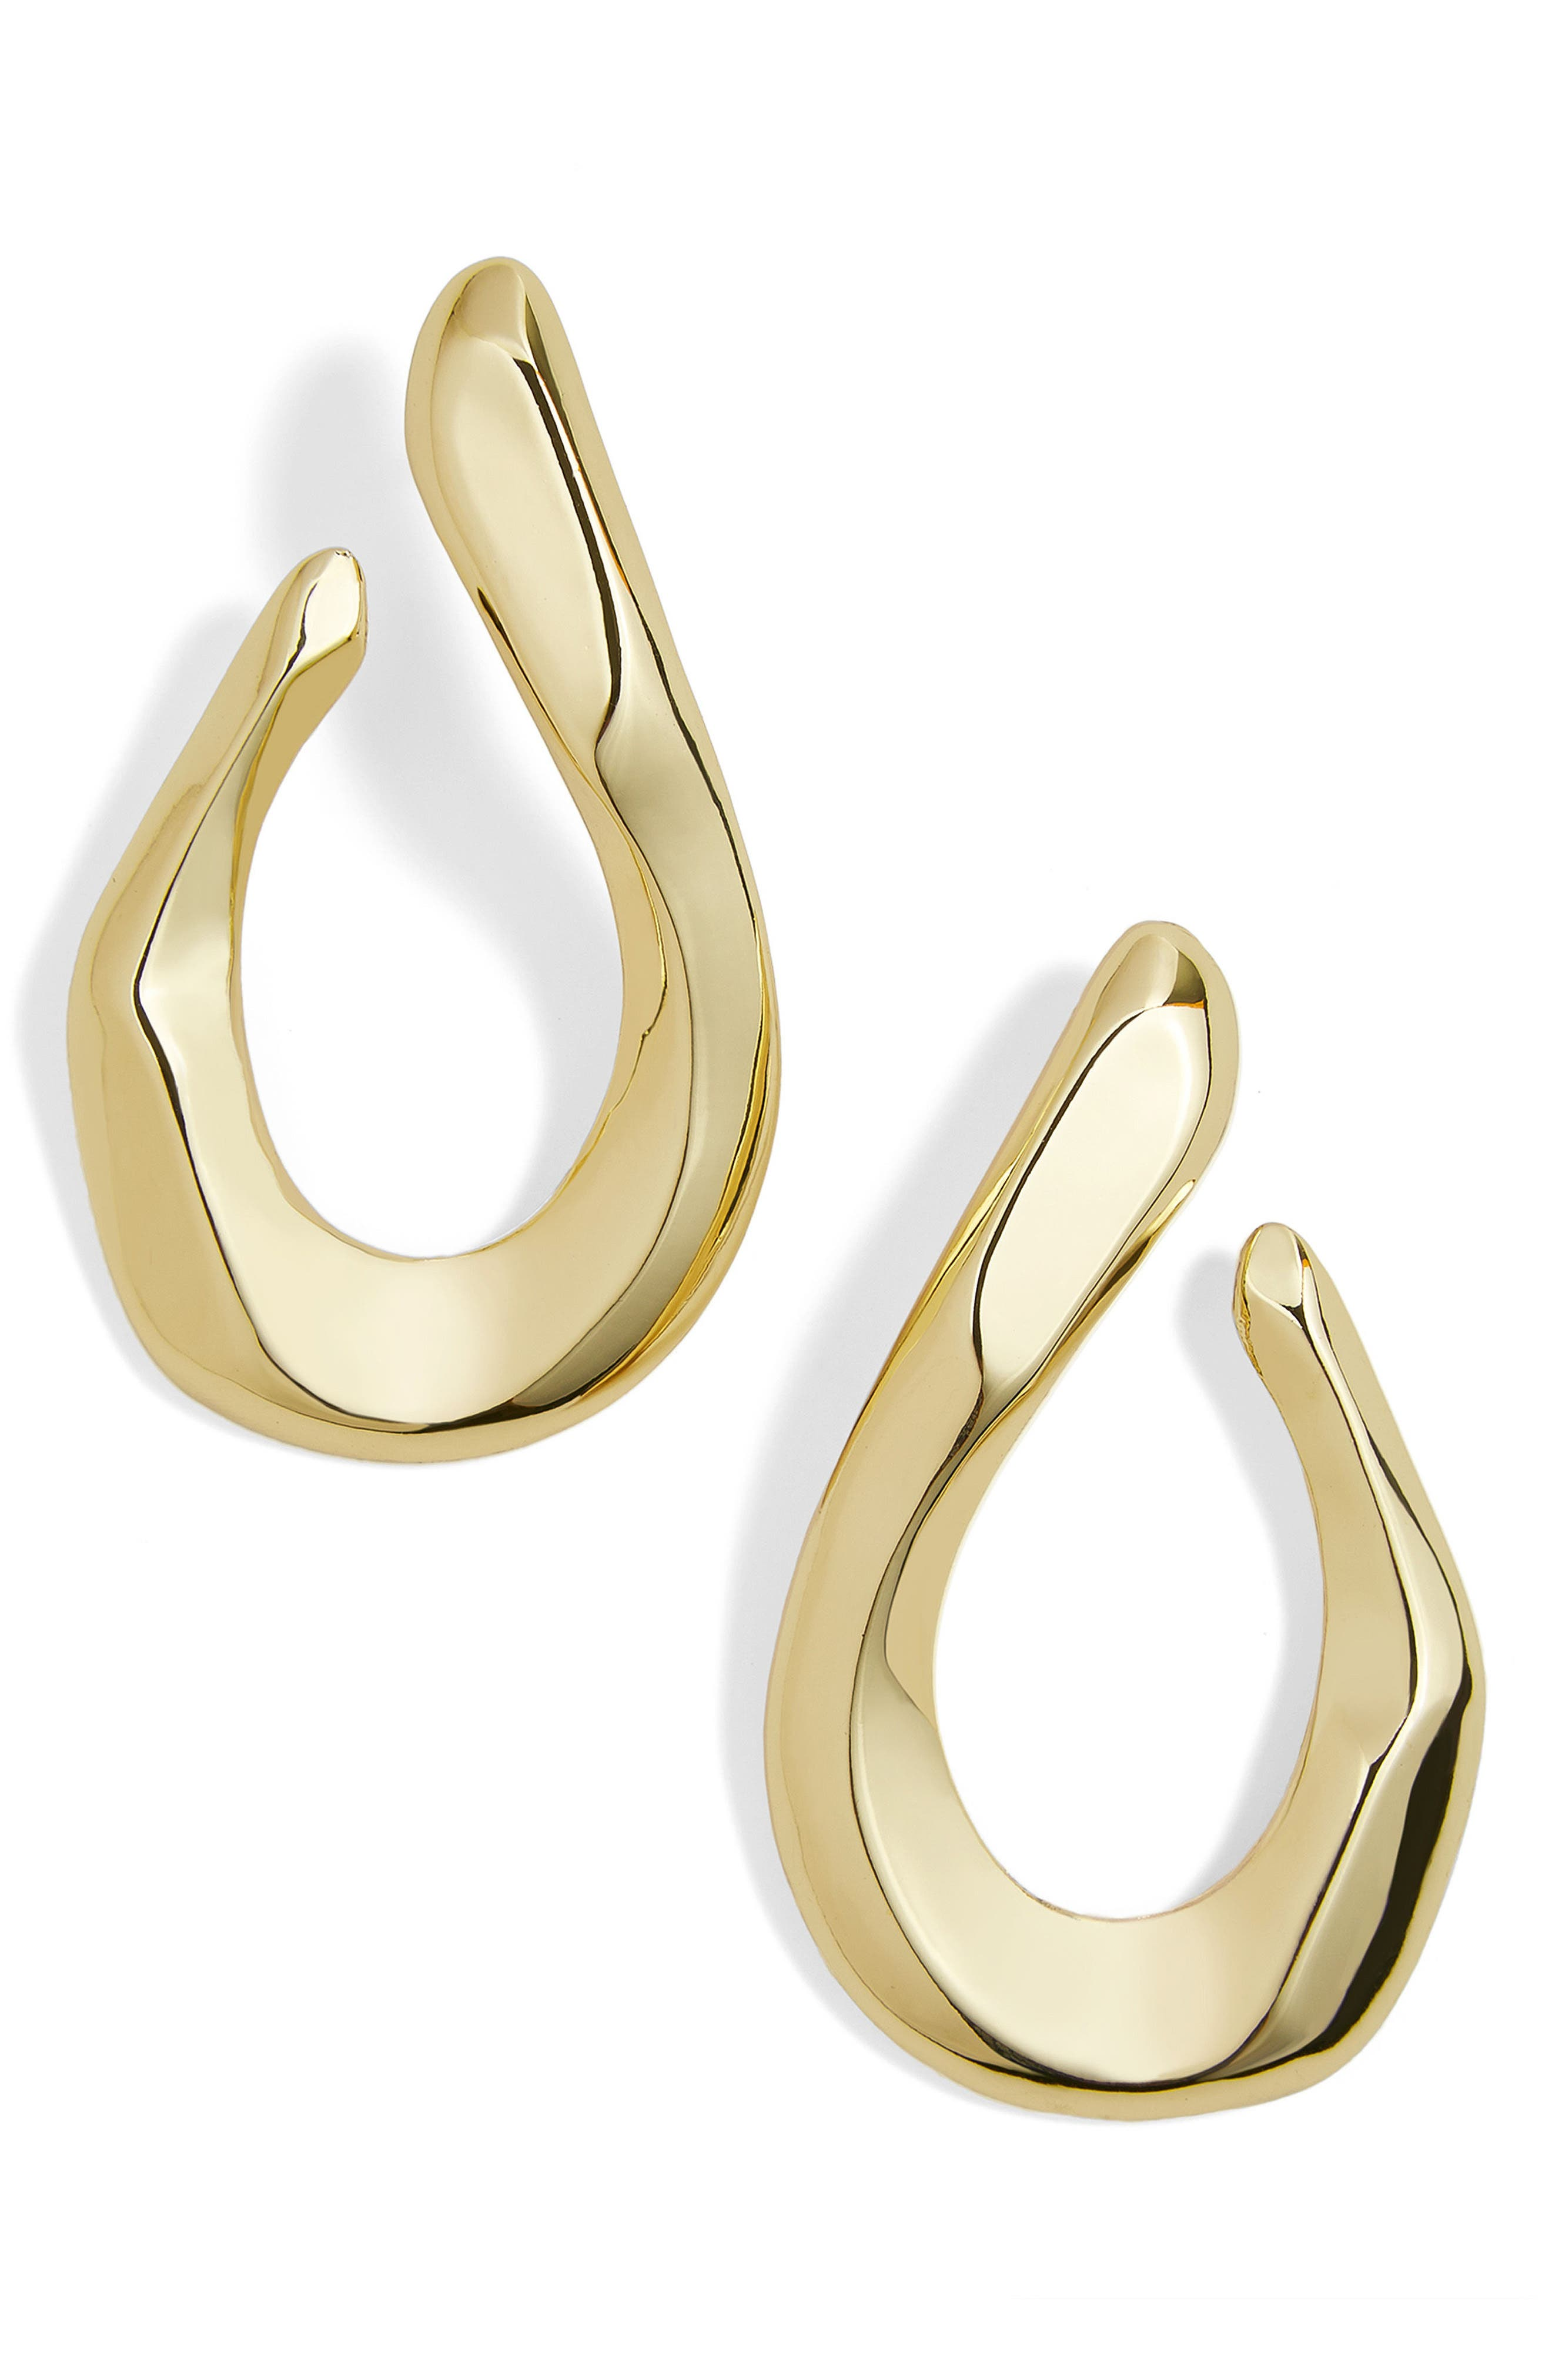 Avani Hammered Twisted Hoop Earrings,                             Main thumbnail 1, color,                             Gold